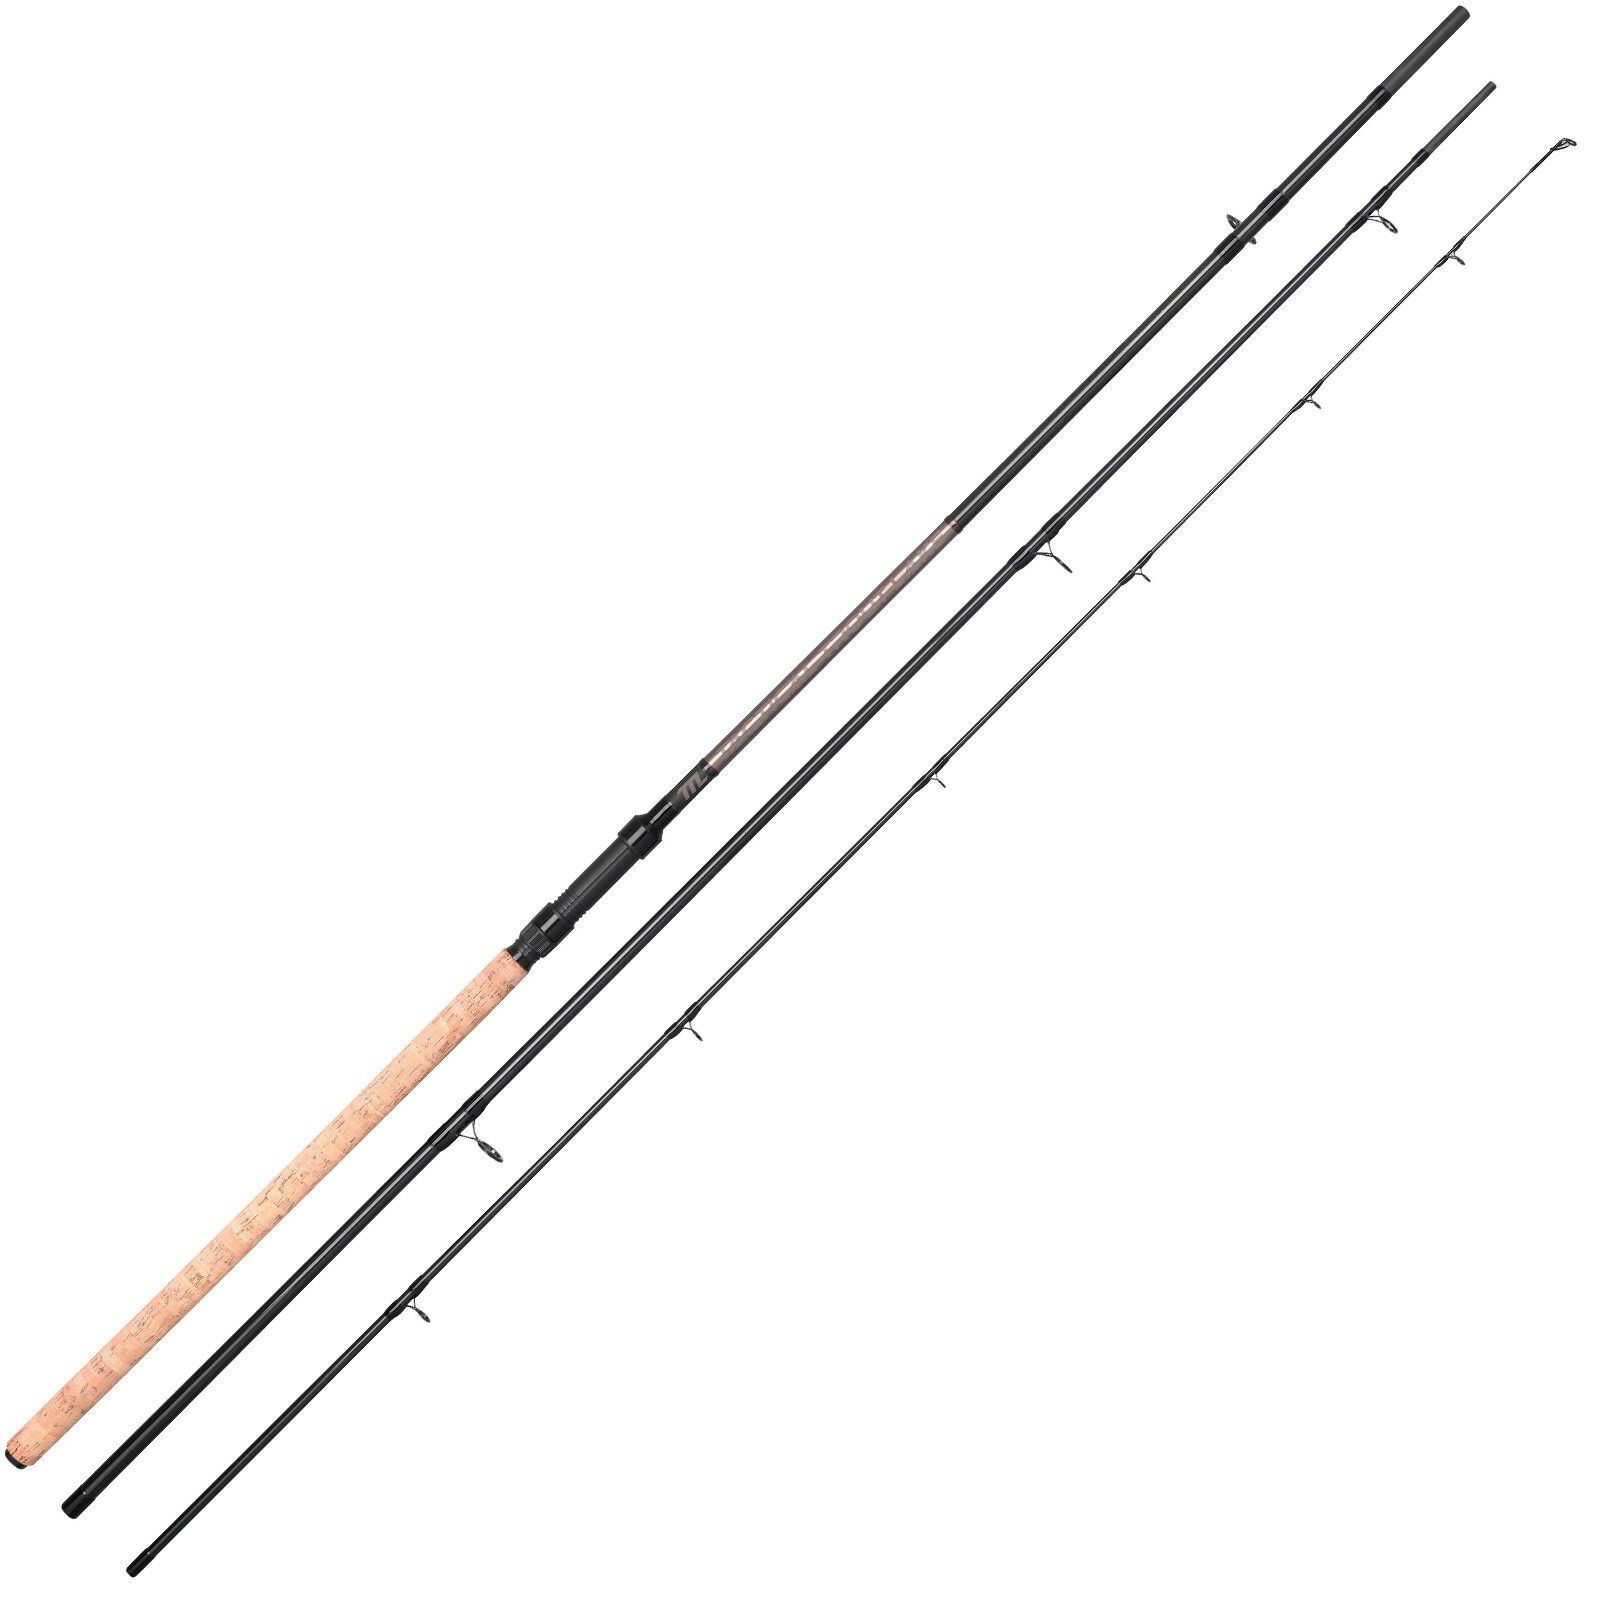 Spro Tactical Trout Lake 3,30m 5-40g